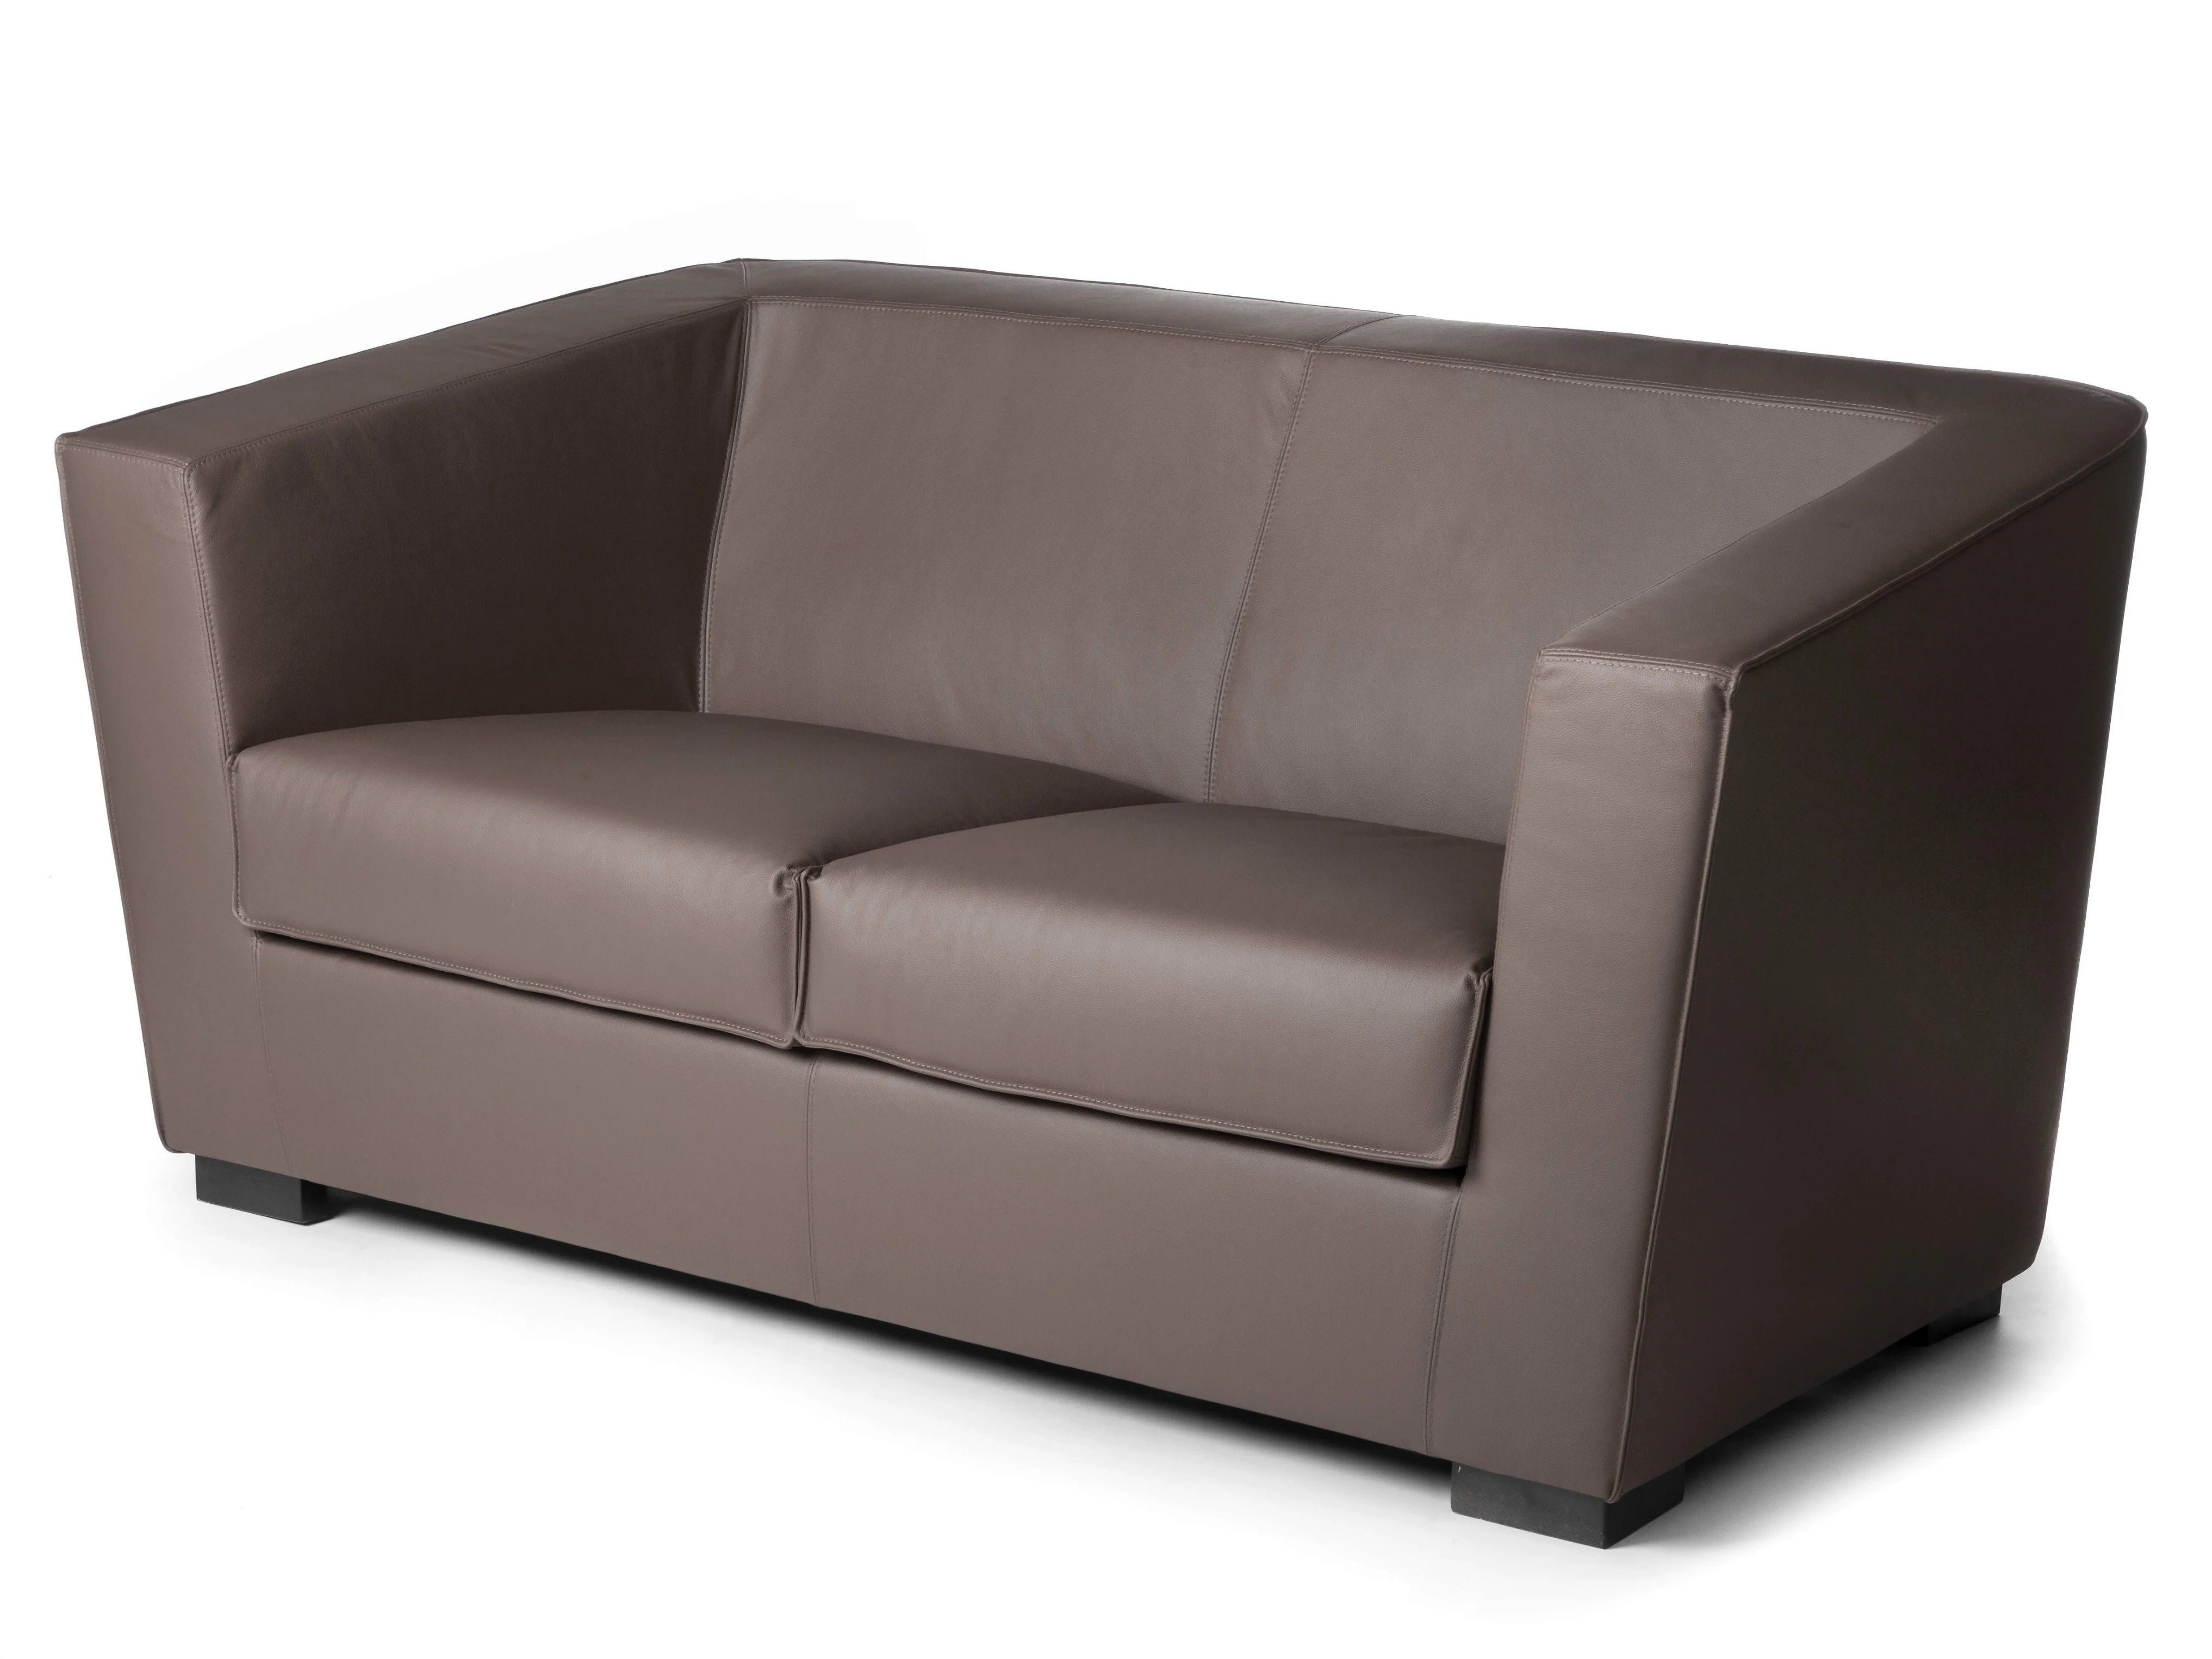 petra sofa bed furniture village leather sectional sofas under 1000 denahrumah 2016 2 seater images